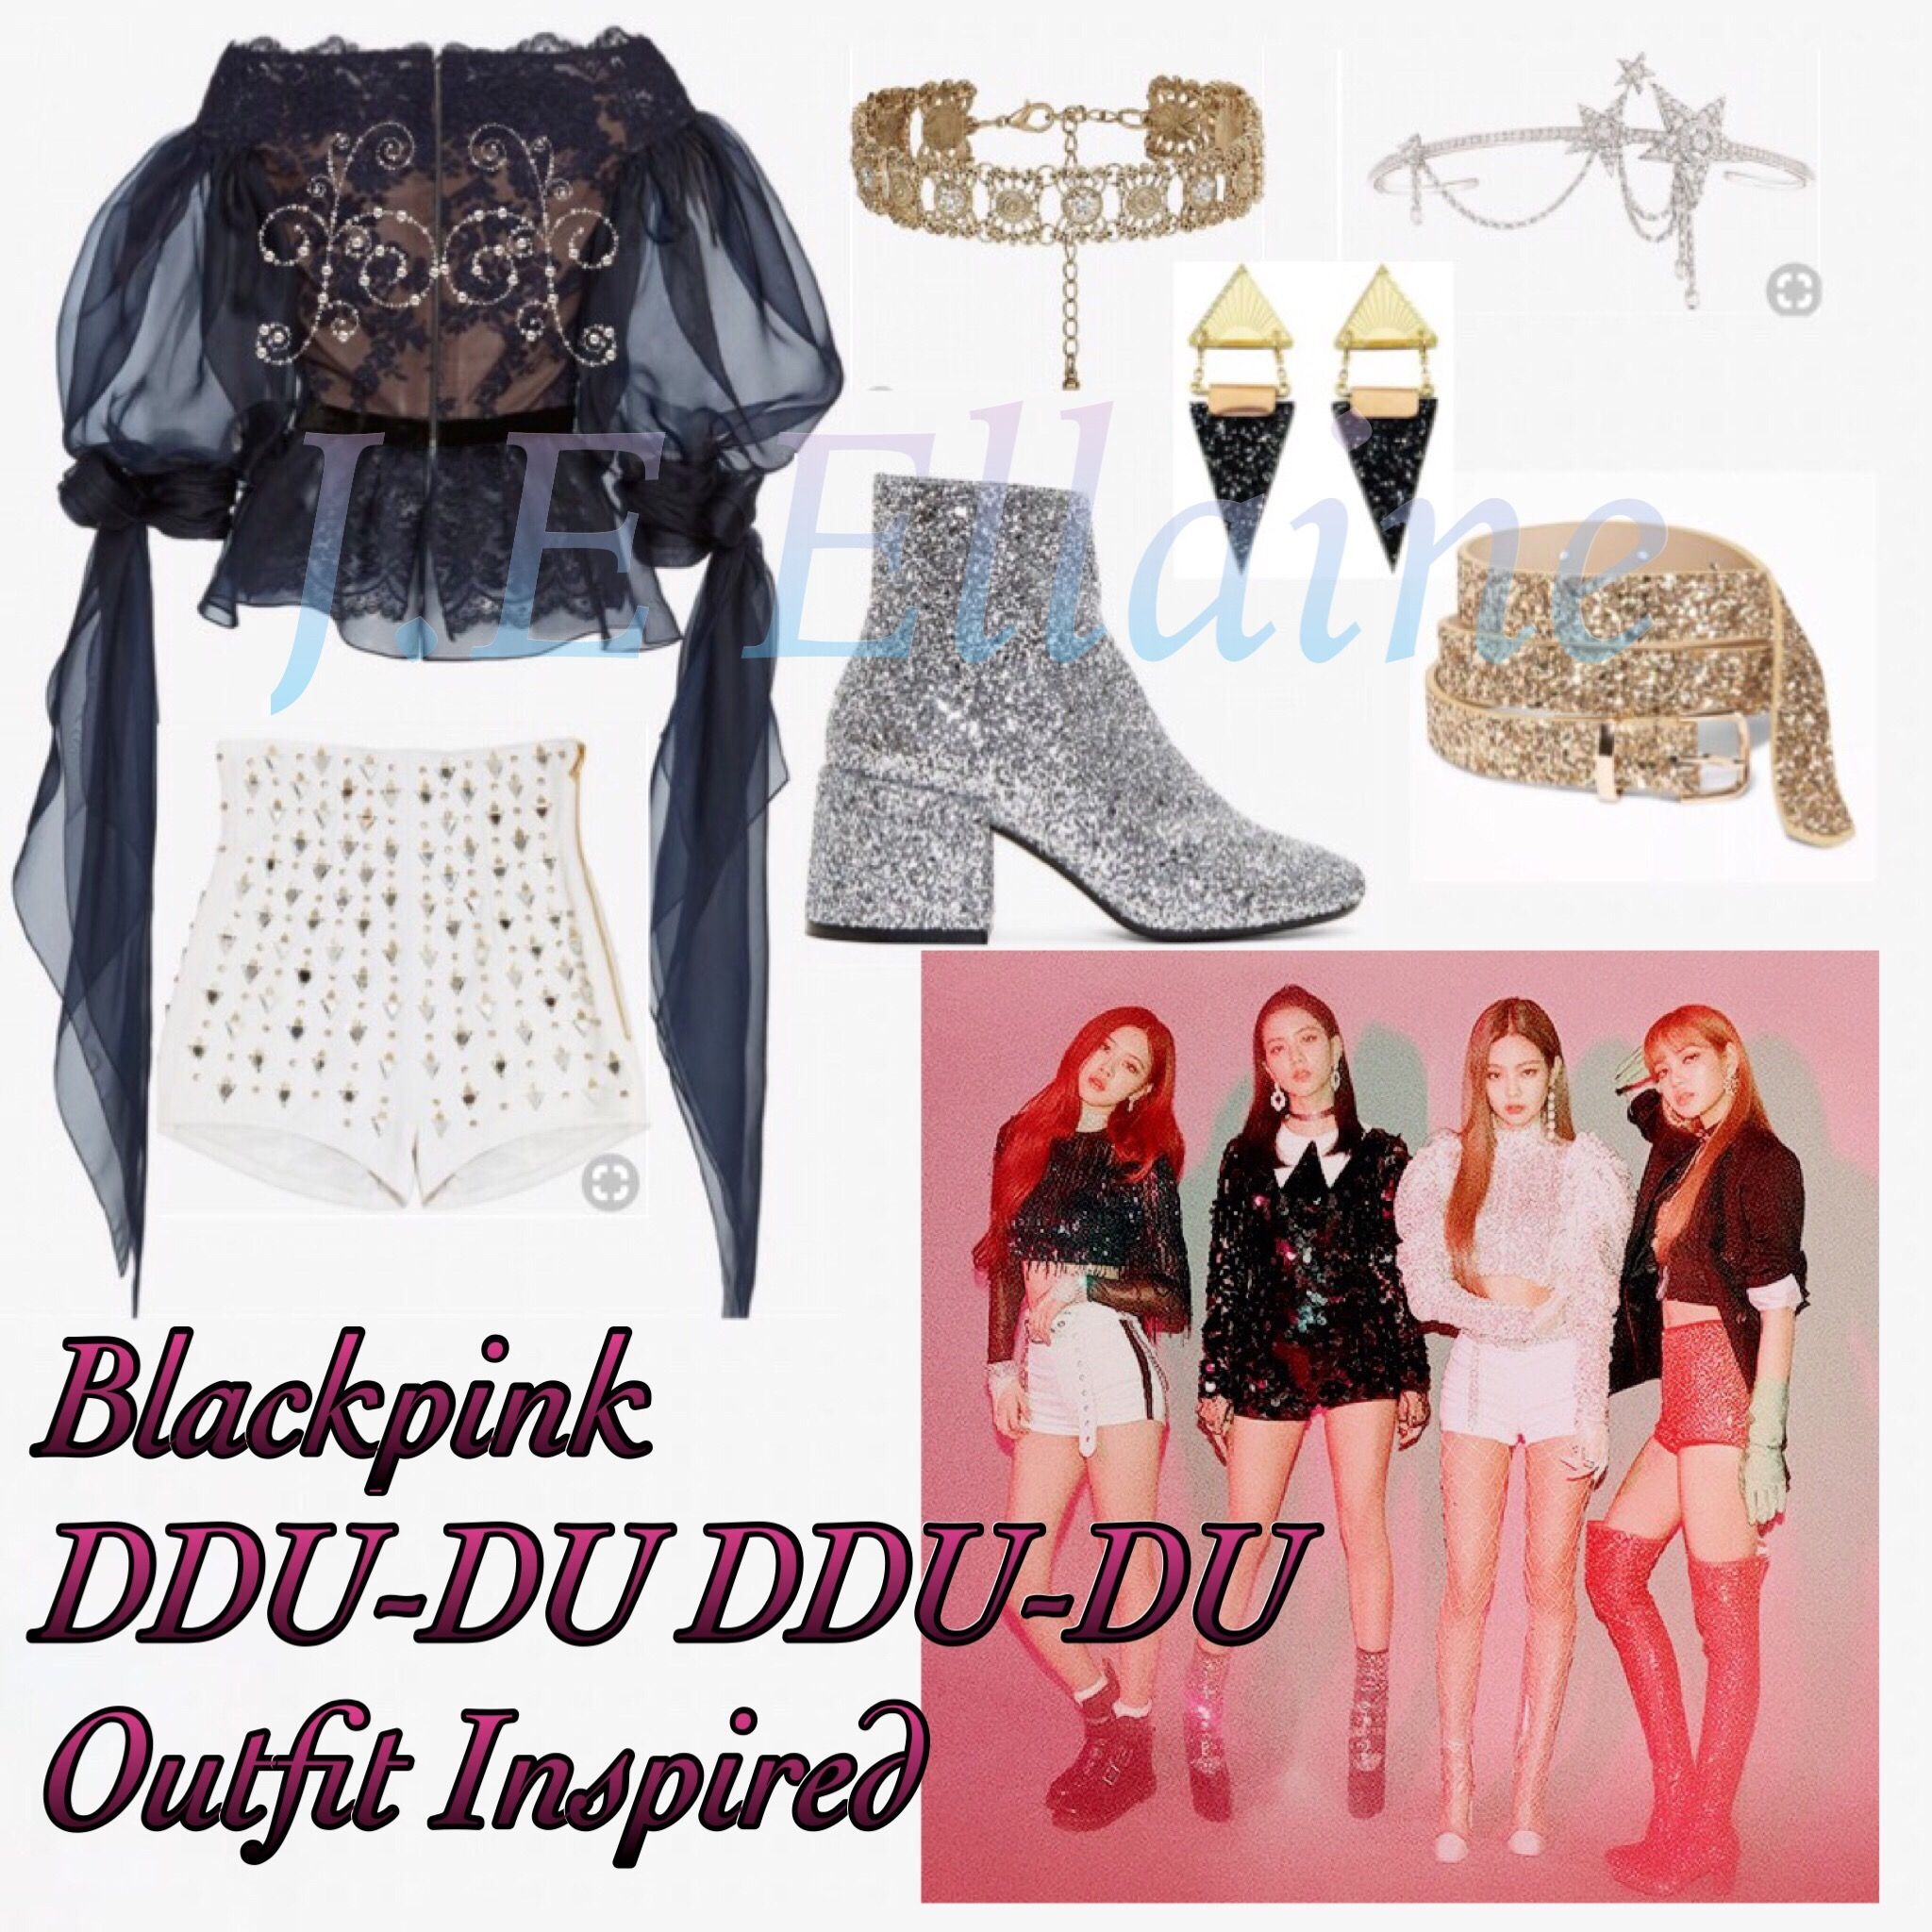 Blackpink Outfit Ideas: Blackpink Outfit Square Up Inspired